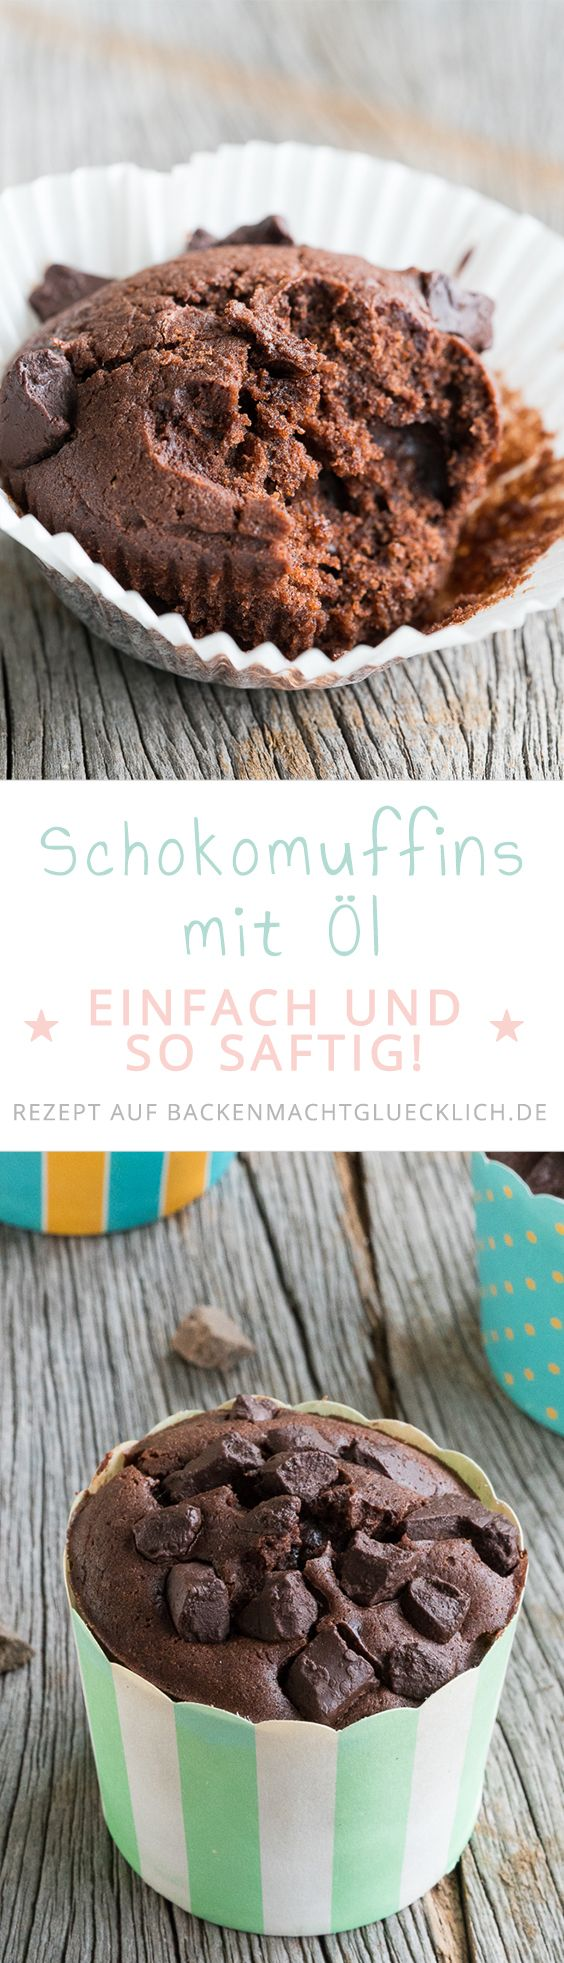 die besten 25 schokomuffins ideen auf pinterest schokoladenmuffins schoko muffins backen und. Black Bedroom Furniture Sets. Home Design Ideas